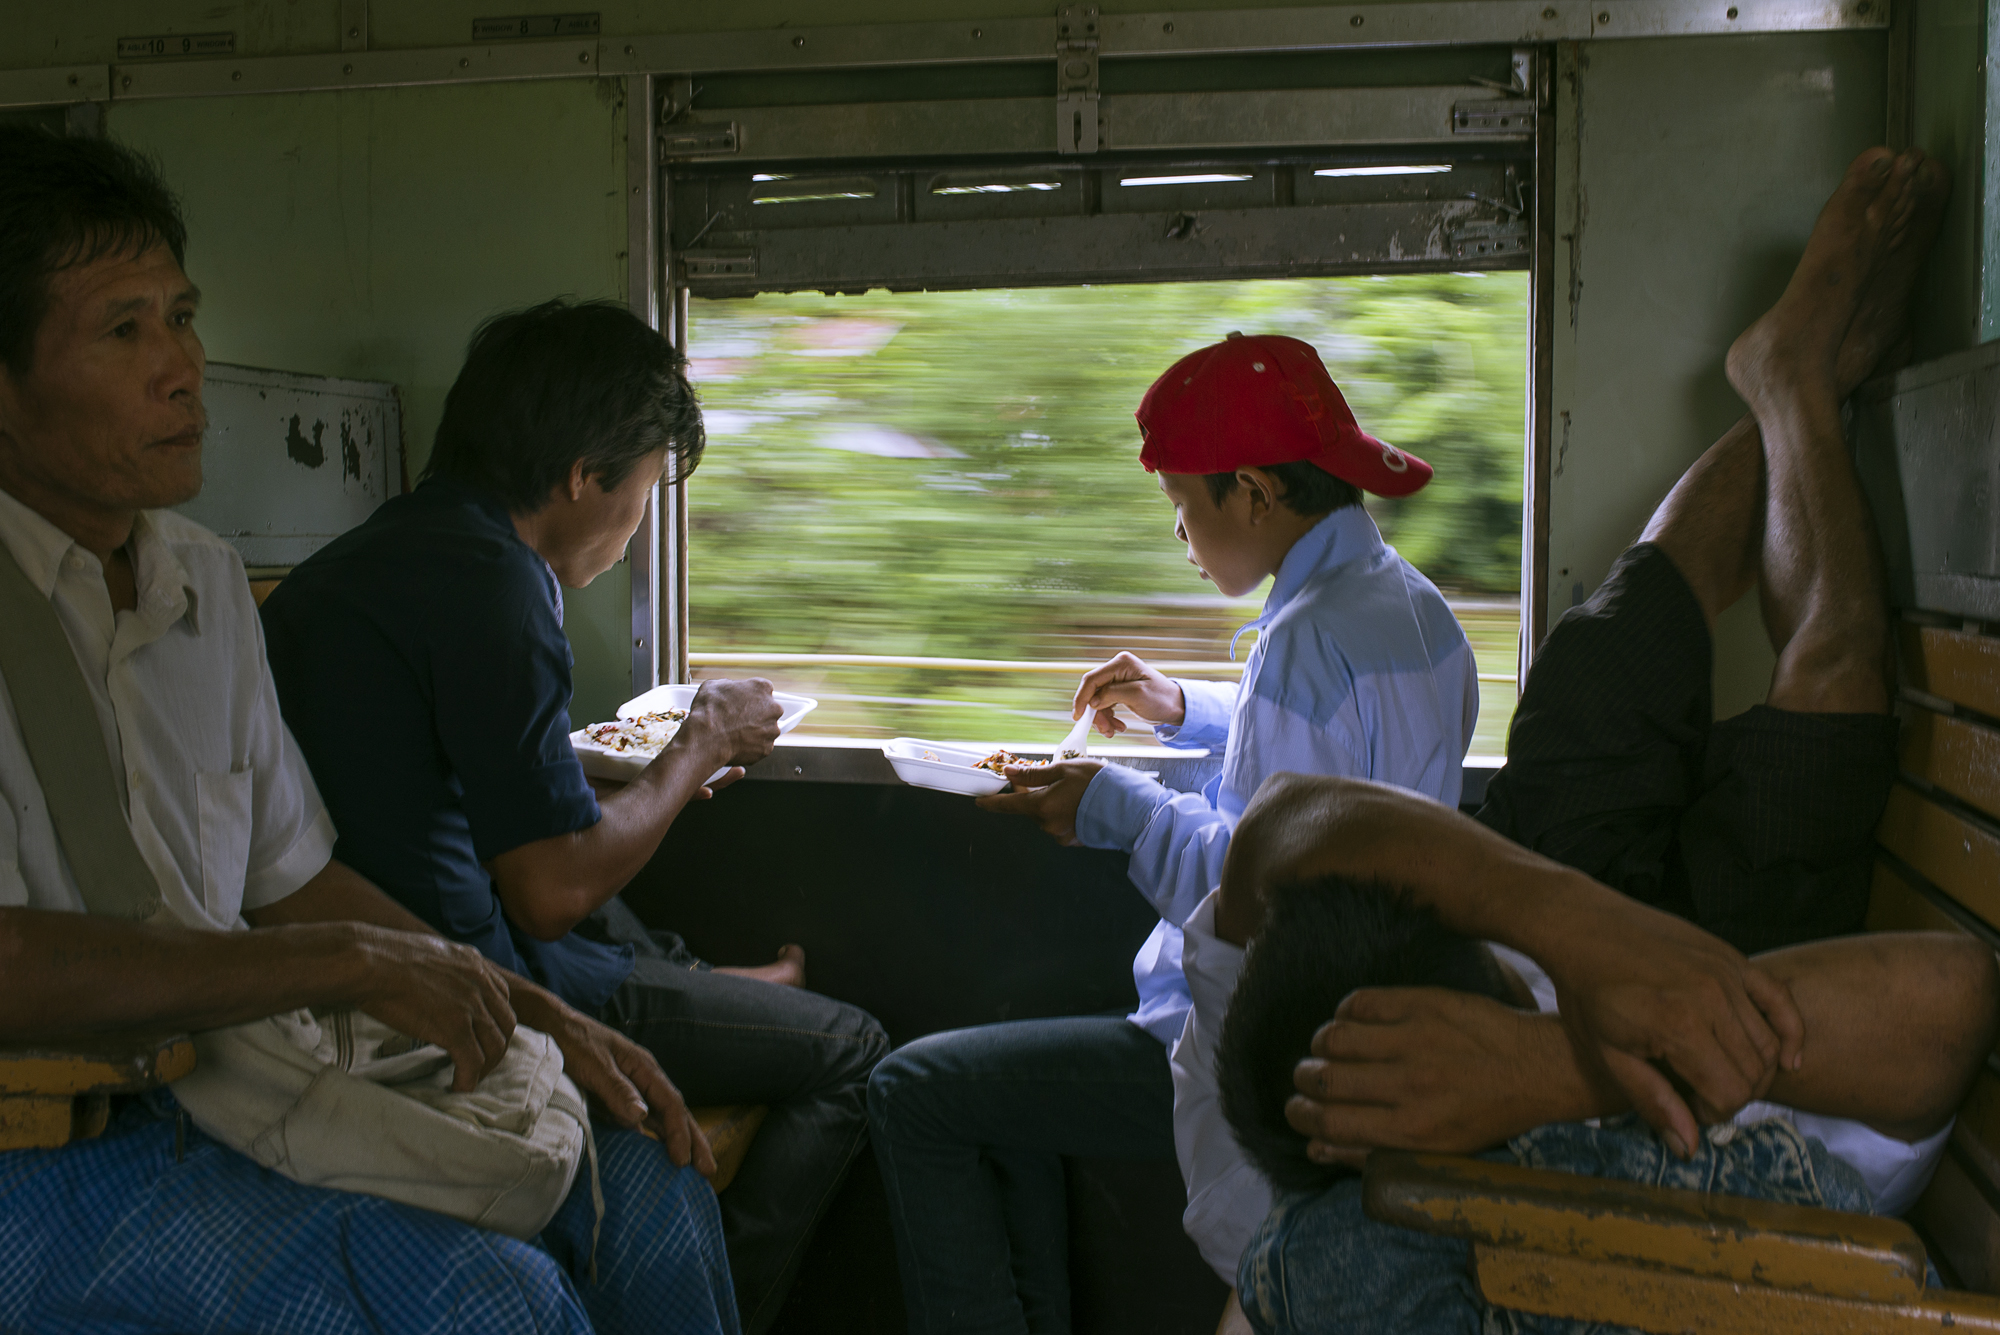 A family eats lunch on the economy class carriage